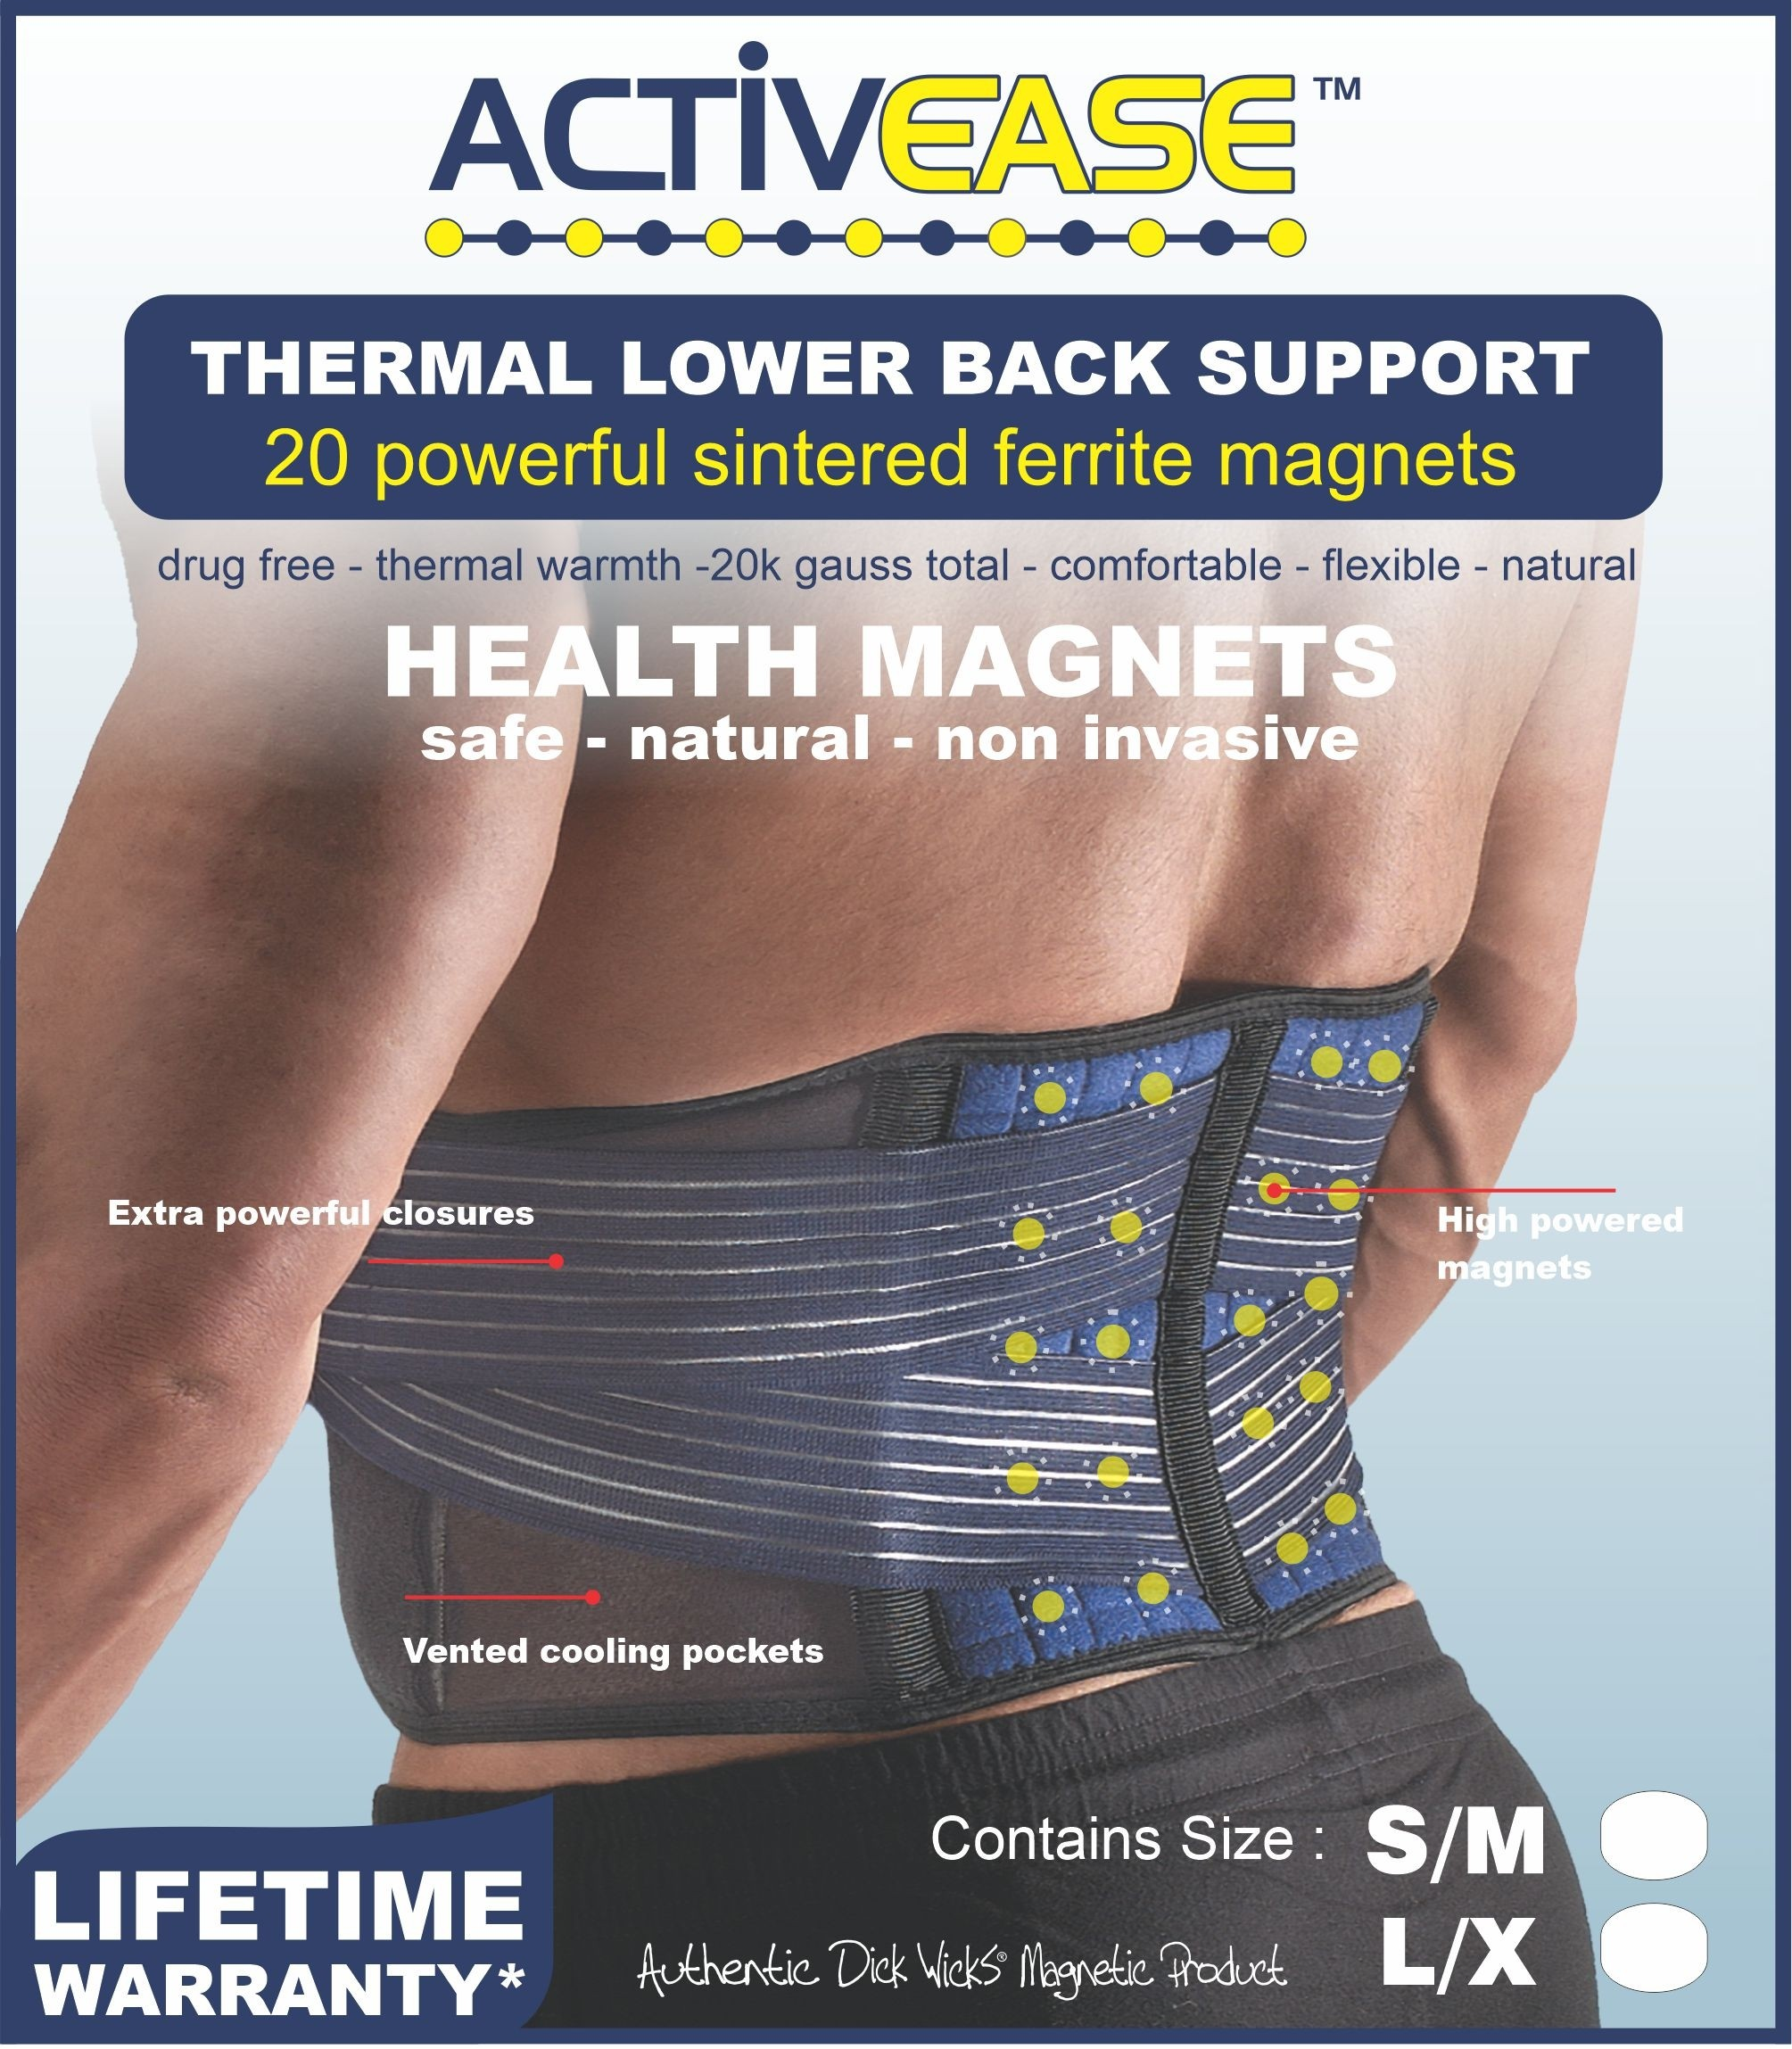 Activease Thermal Back Support with Magnets by Dick Wicks